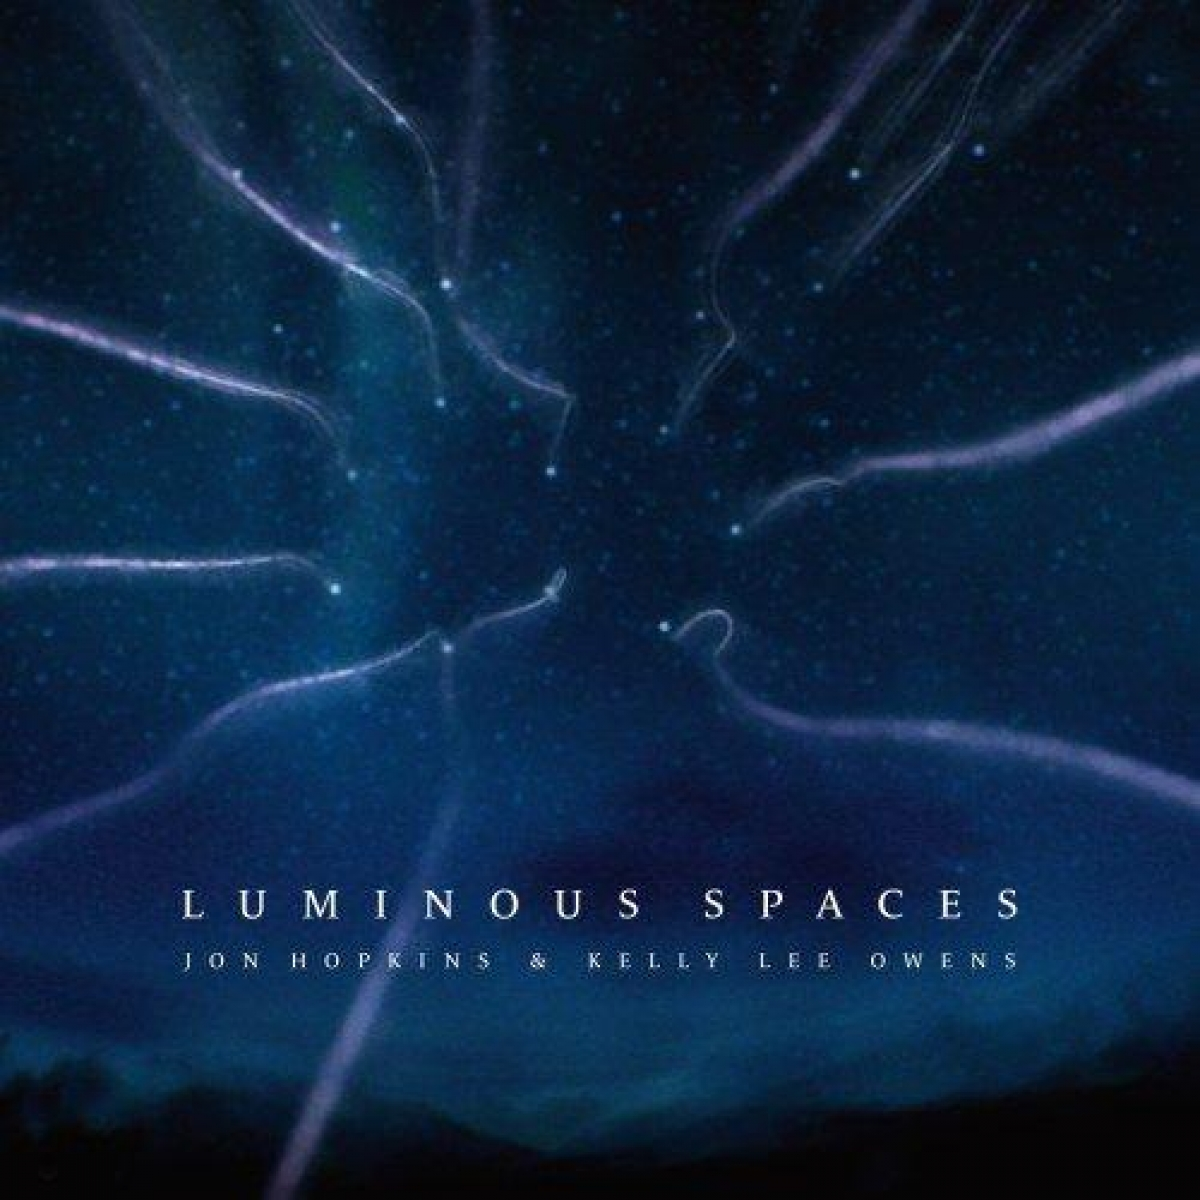 New track - Luminous Spaces